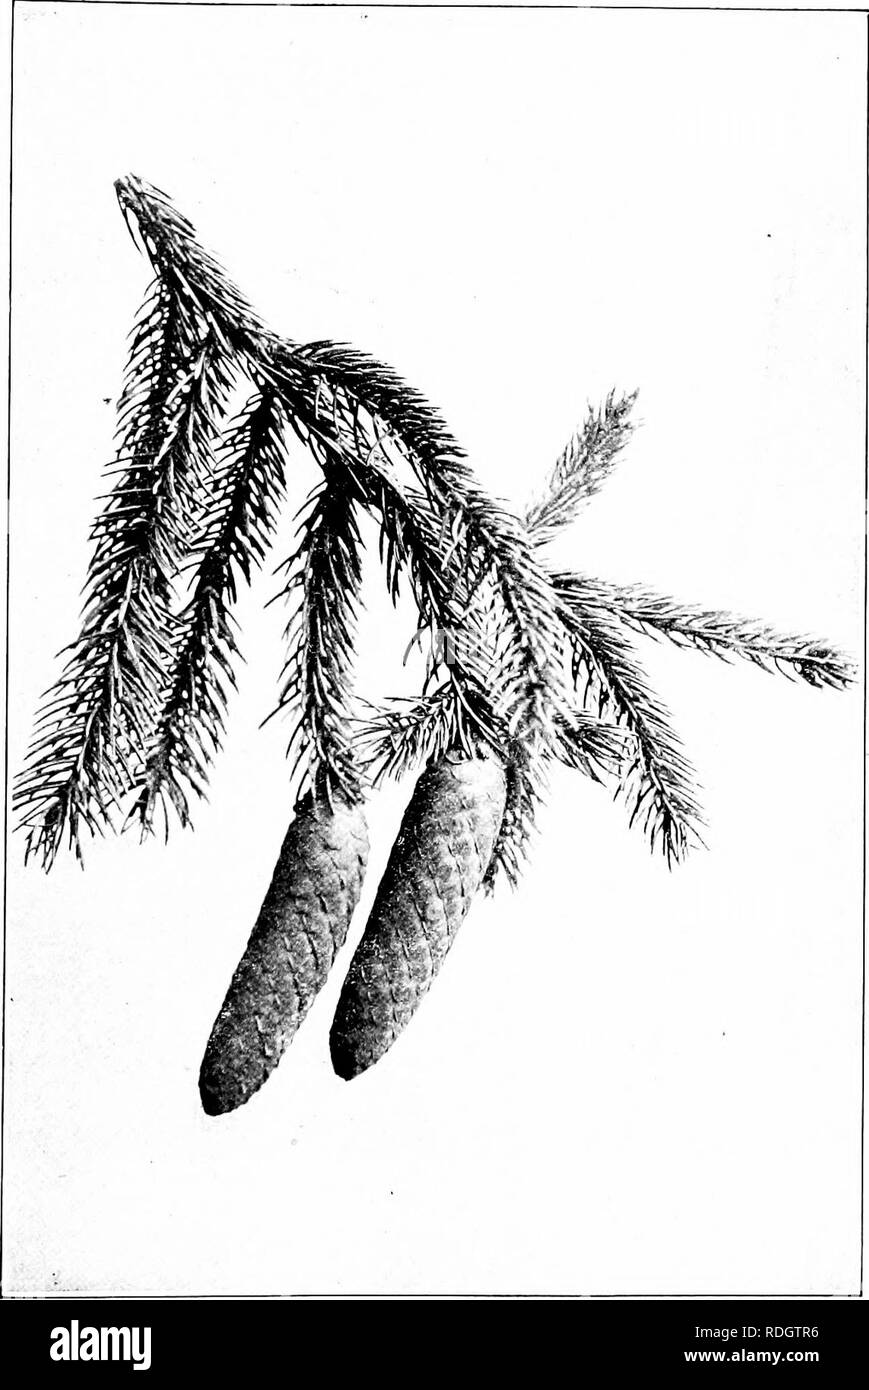 . Our native trees and how to identify them; a popular study of their habits and their peculiarities. Trees. NOKWAY bPKUCi. Fruiting Spray of Norway Spruce, Picea exceha. Cones 4' to 6' long.. Please note that these images are extracted from scanned page images that may have been digitally enhanced for readability - coloration and appearance of these illustrations may not perfectly resemble the original work.. Keeler, Harriet L. (Harriet Louise), 1846-1921. New York, C. Scribner's Sons - Stock Image